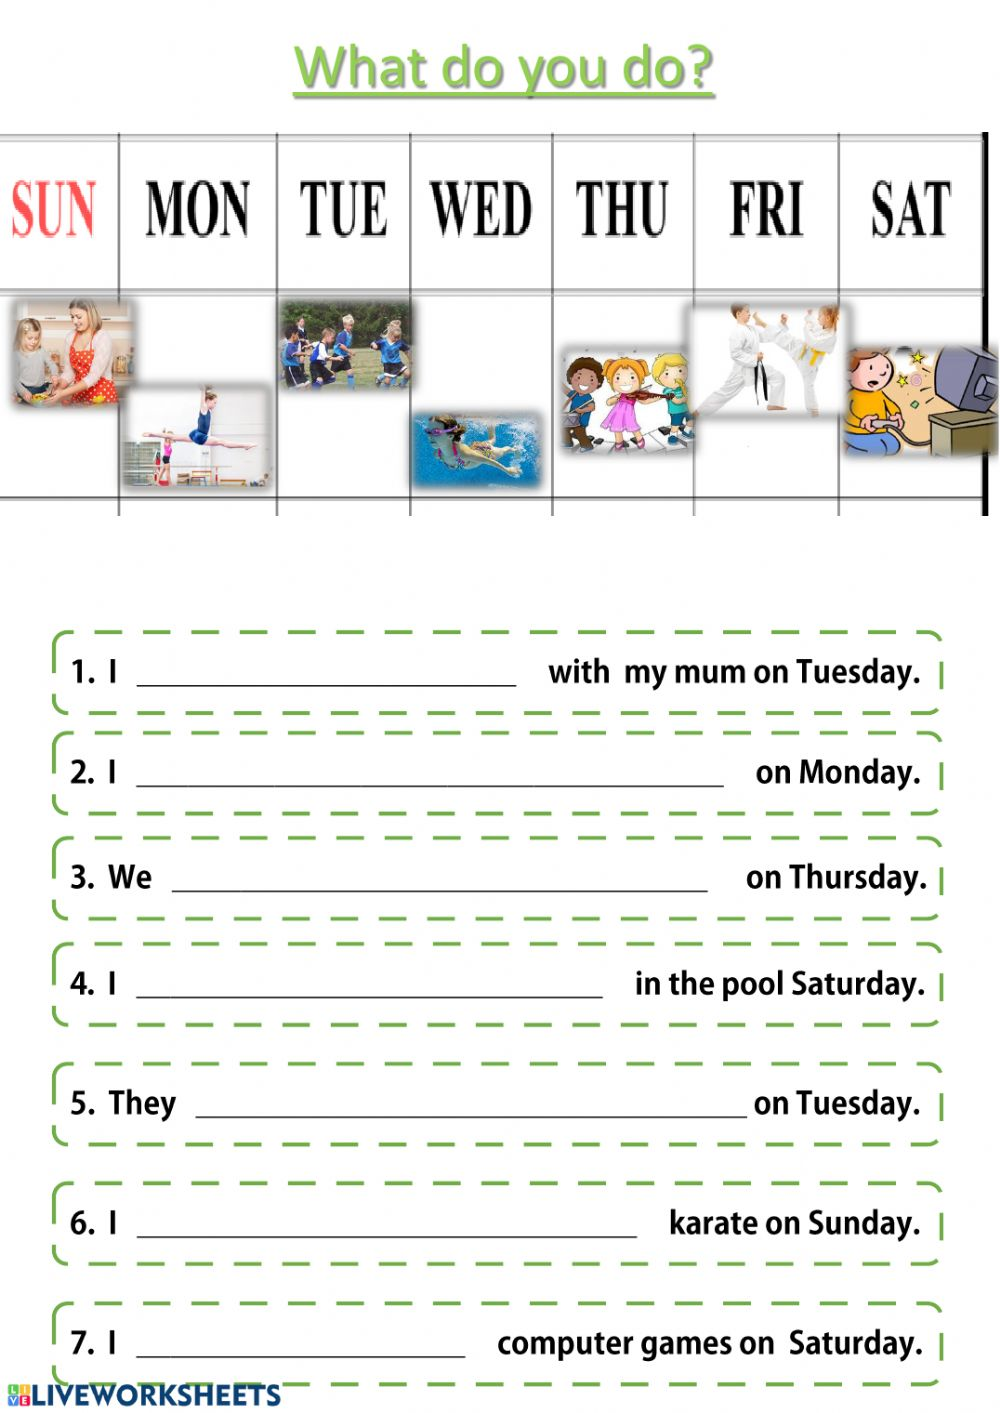 After school activities: Leisure activities worksheet